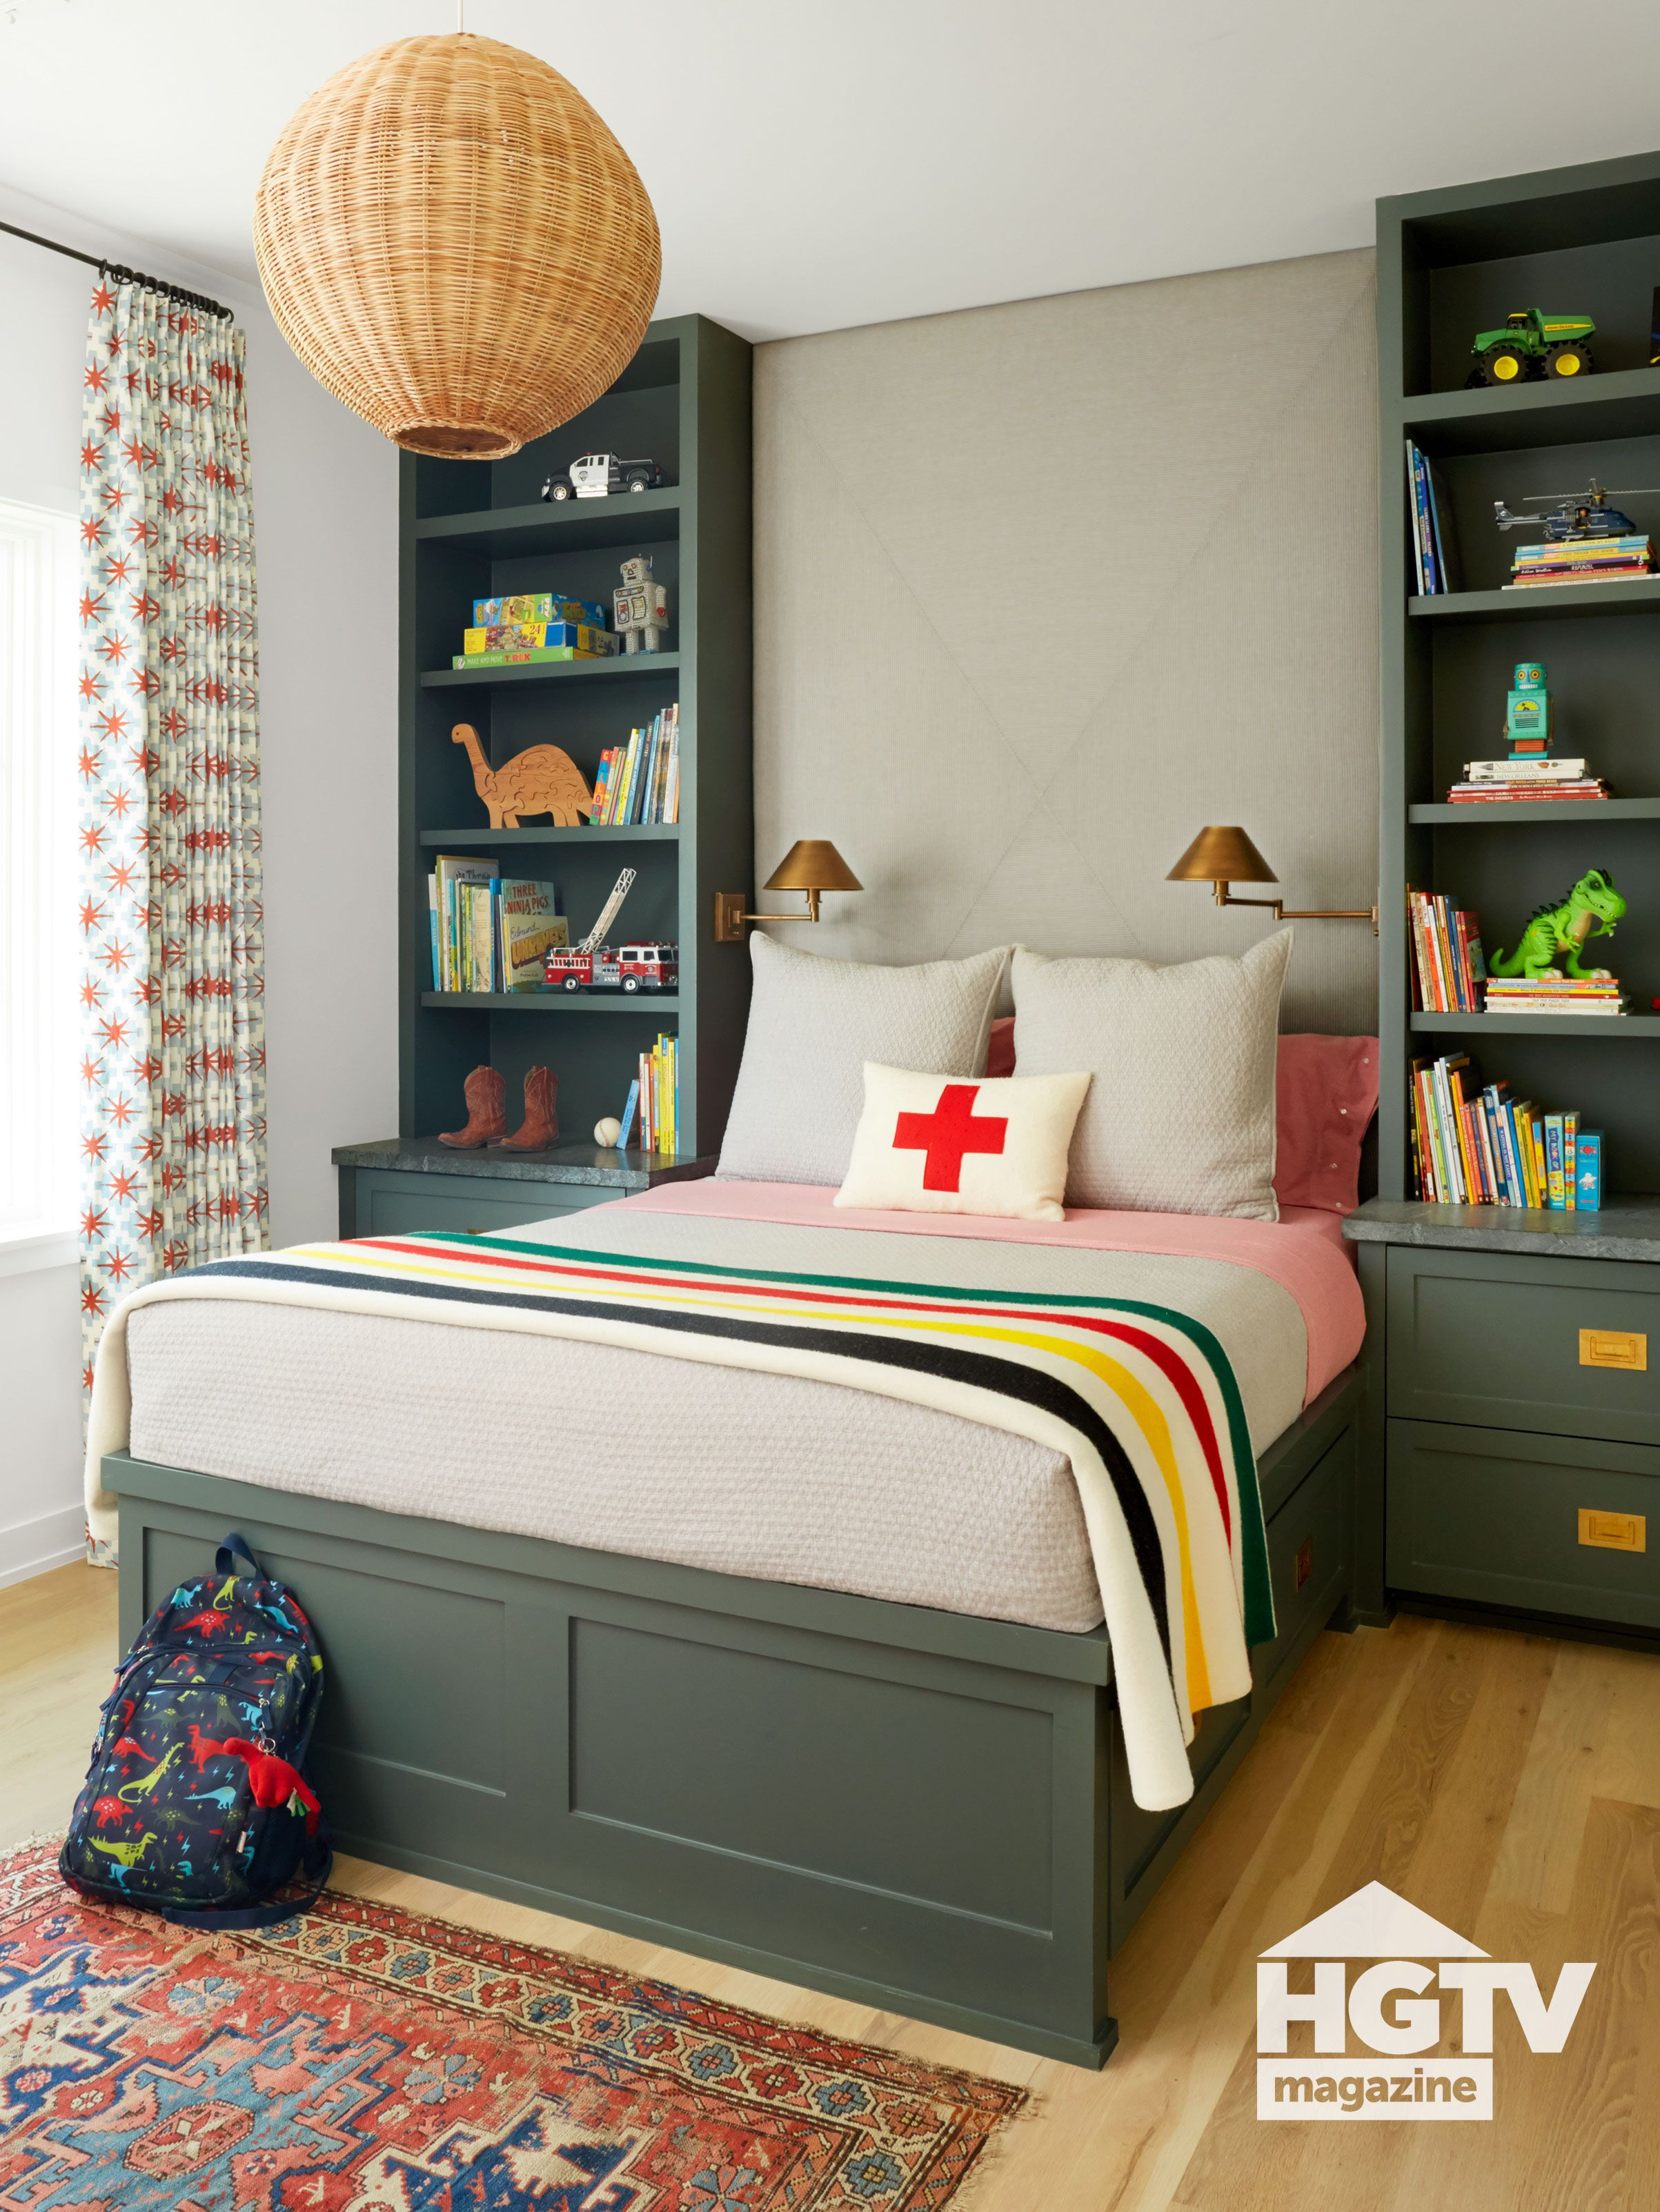 A Hunter Green Bed Frame And Matching Book Shelves Decorate A Boy S Bedroom A Rattan Pendant A Striped Throw Blan In 2020 Green Bedding Home Bright Bedding